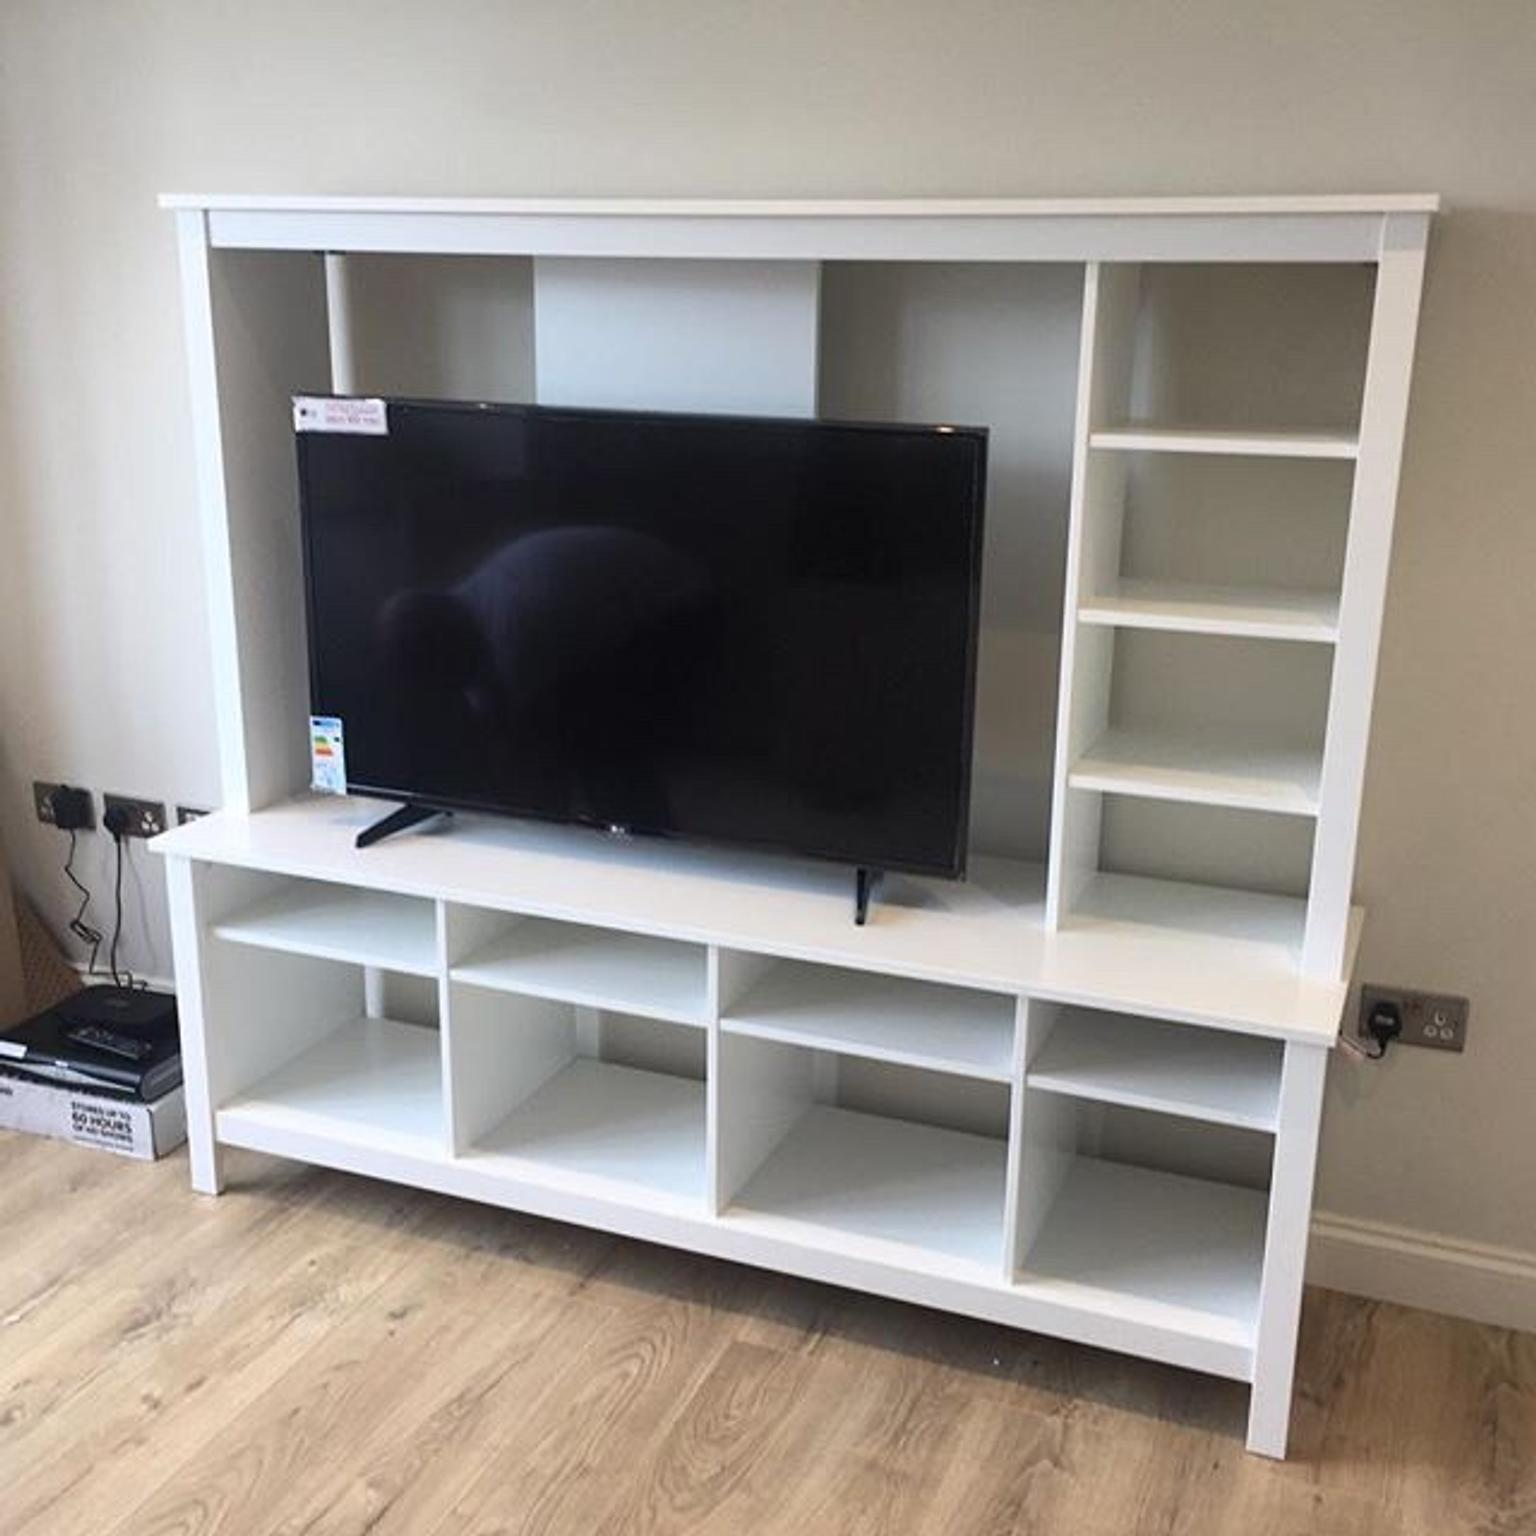 Ikea Tv Unit In B21 Birmingham For 55